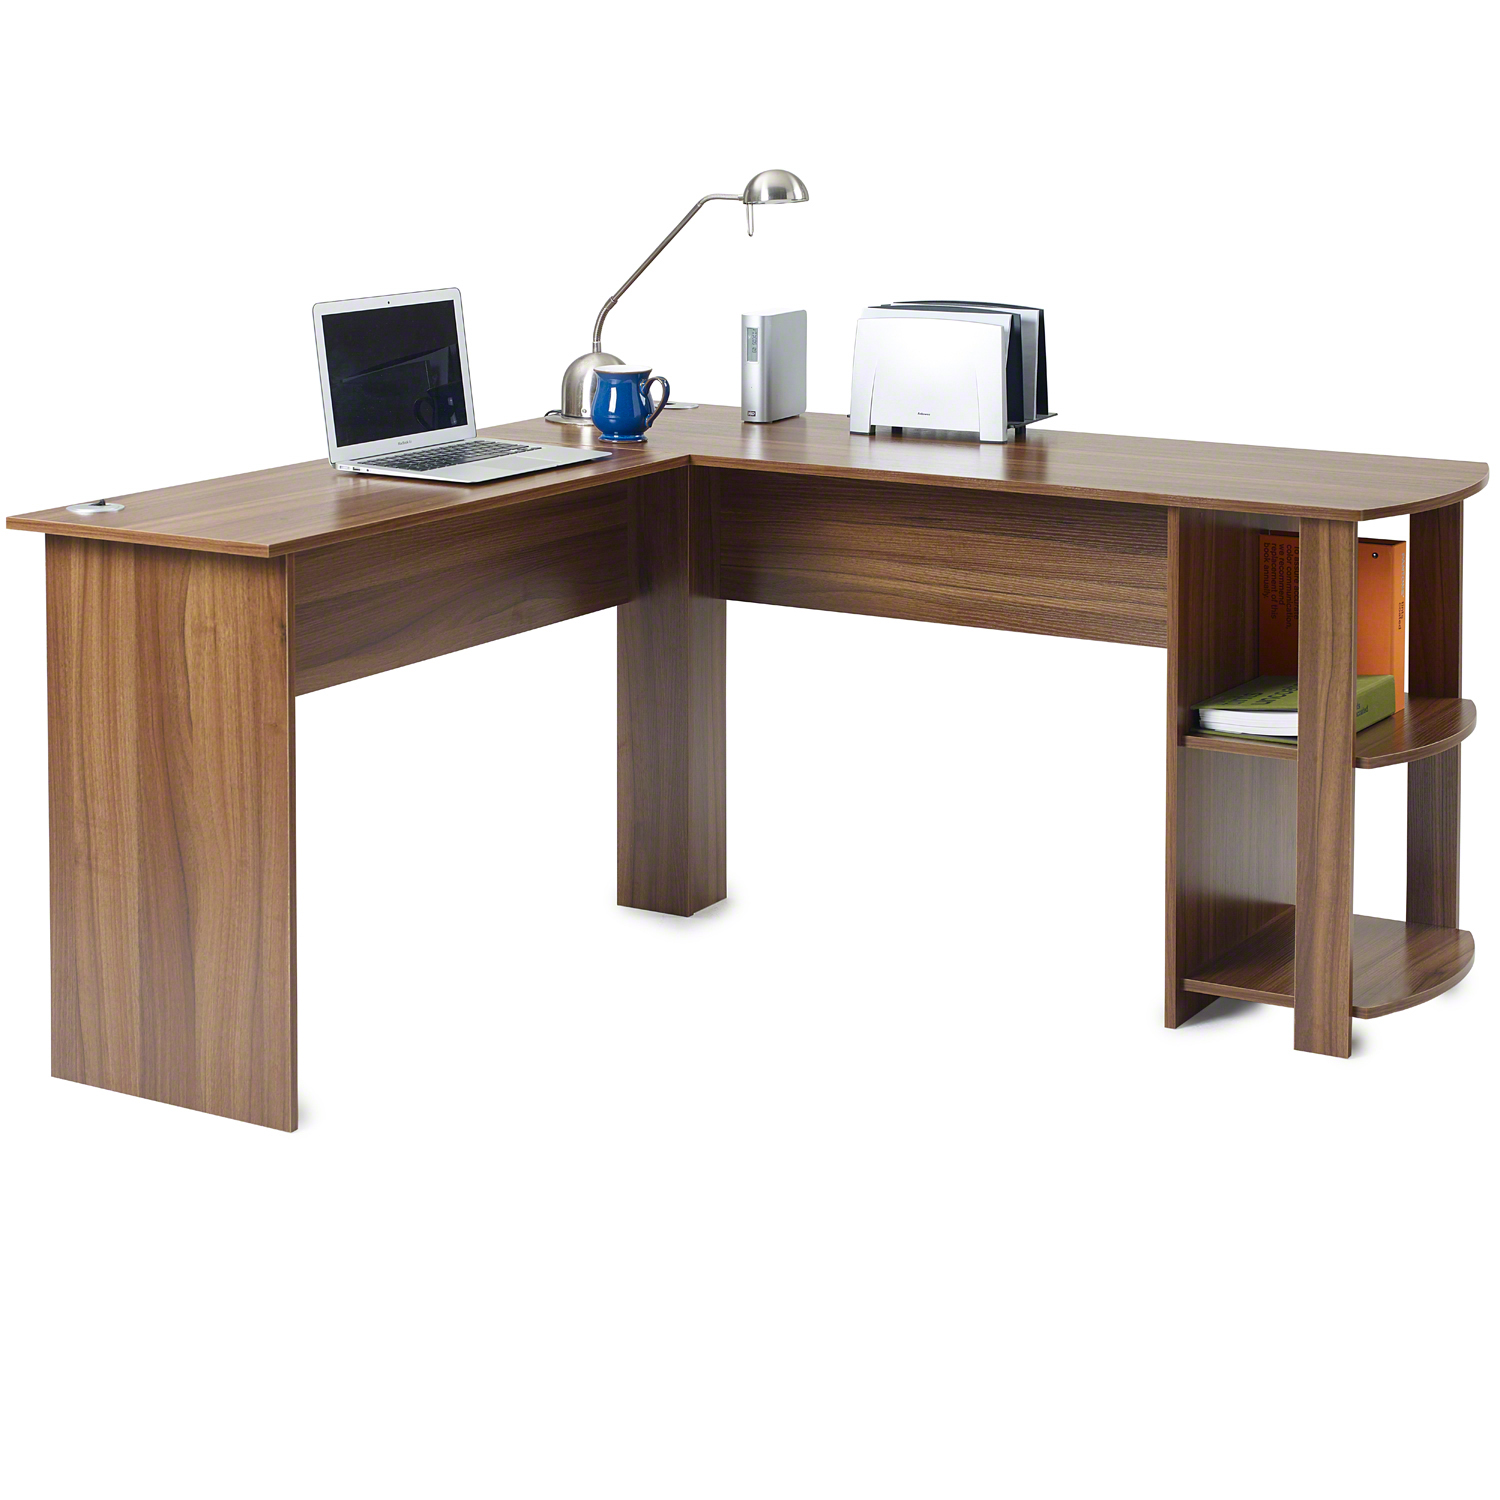 Corner Office Desk Home Laptop Table Workstation Computer: L-Shaped Office Computer Desk, Large Corner PC Table With